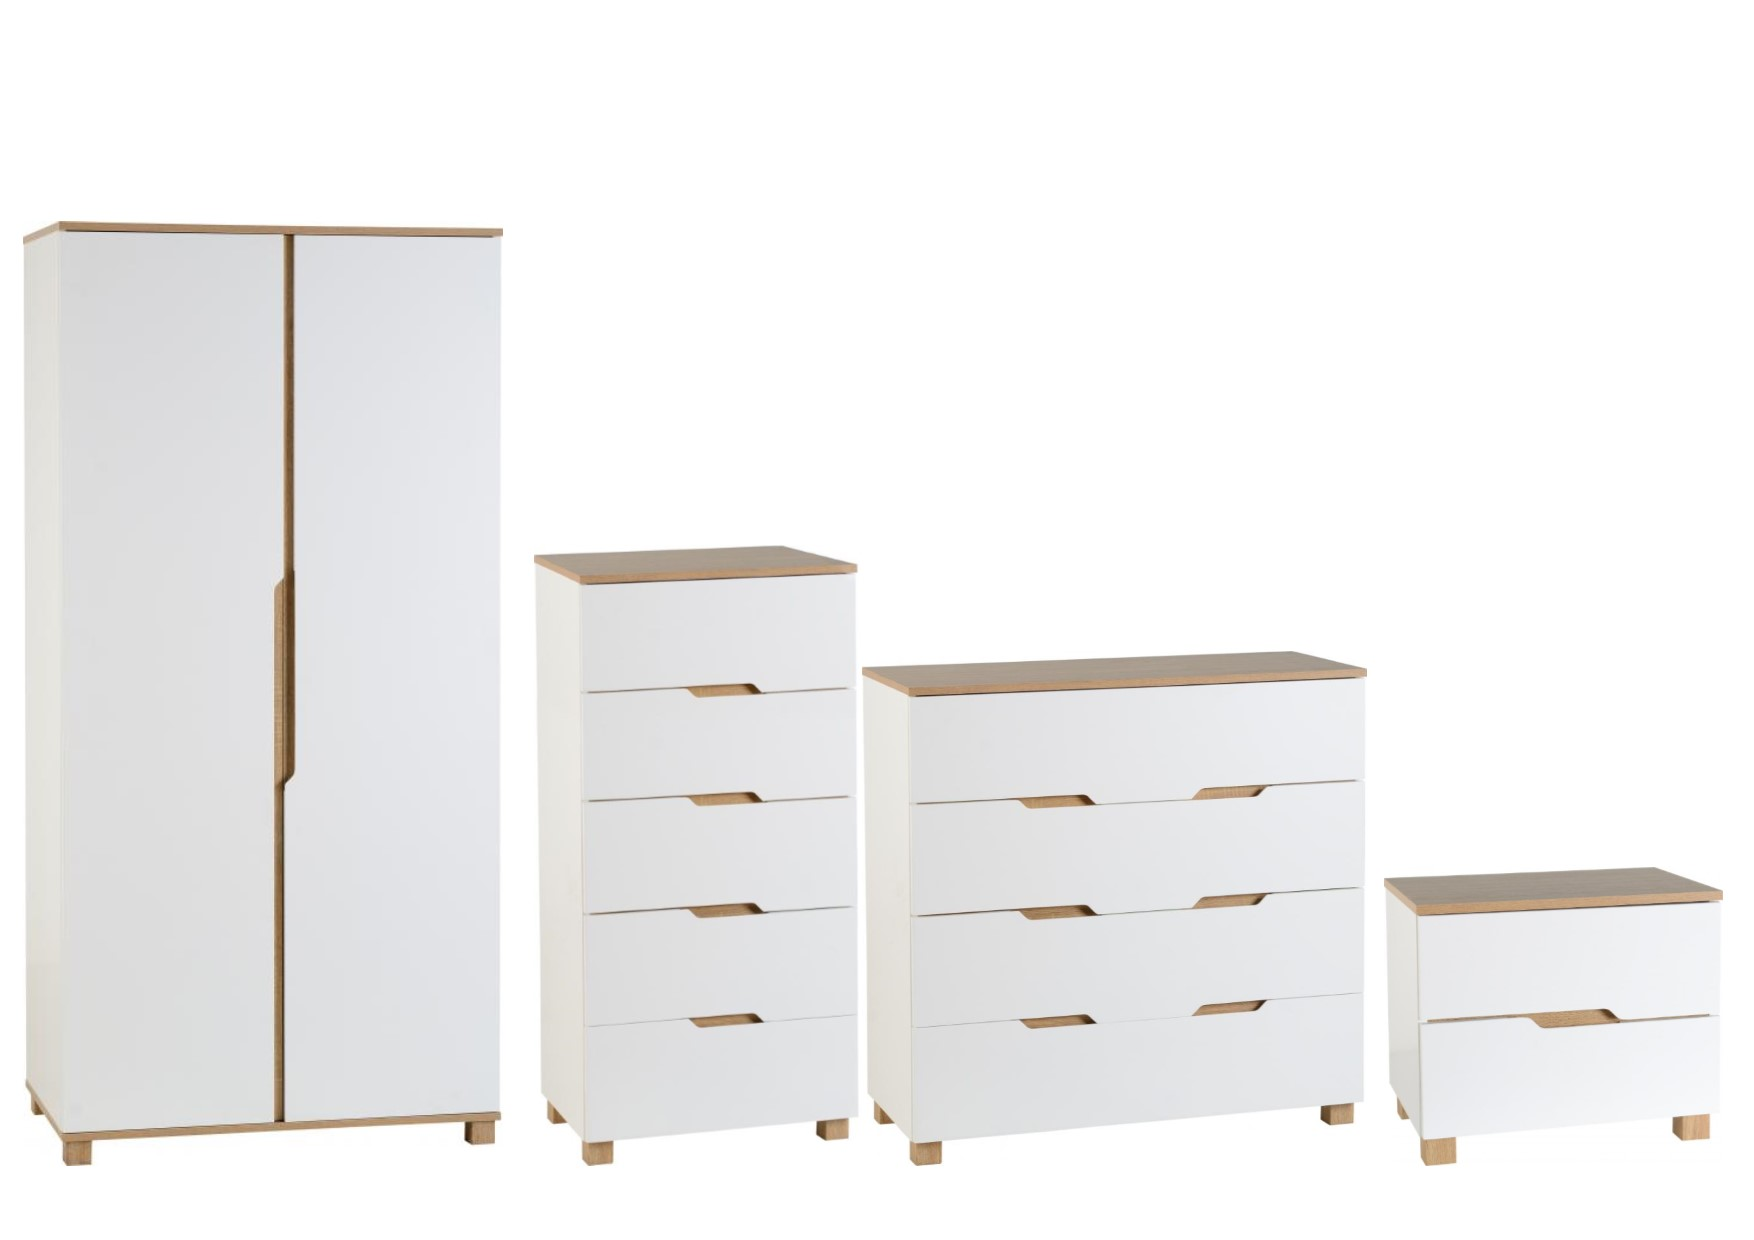 Portsmouth White Oak Coloured Bedroom Furniture Wardrobes - Bedroom furniture portsmouth